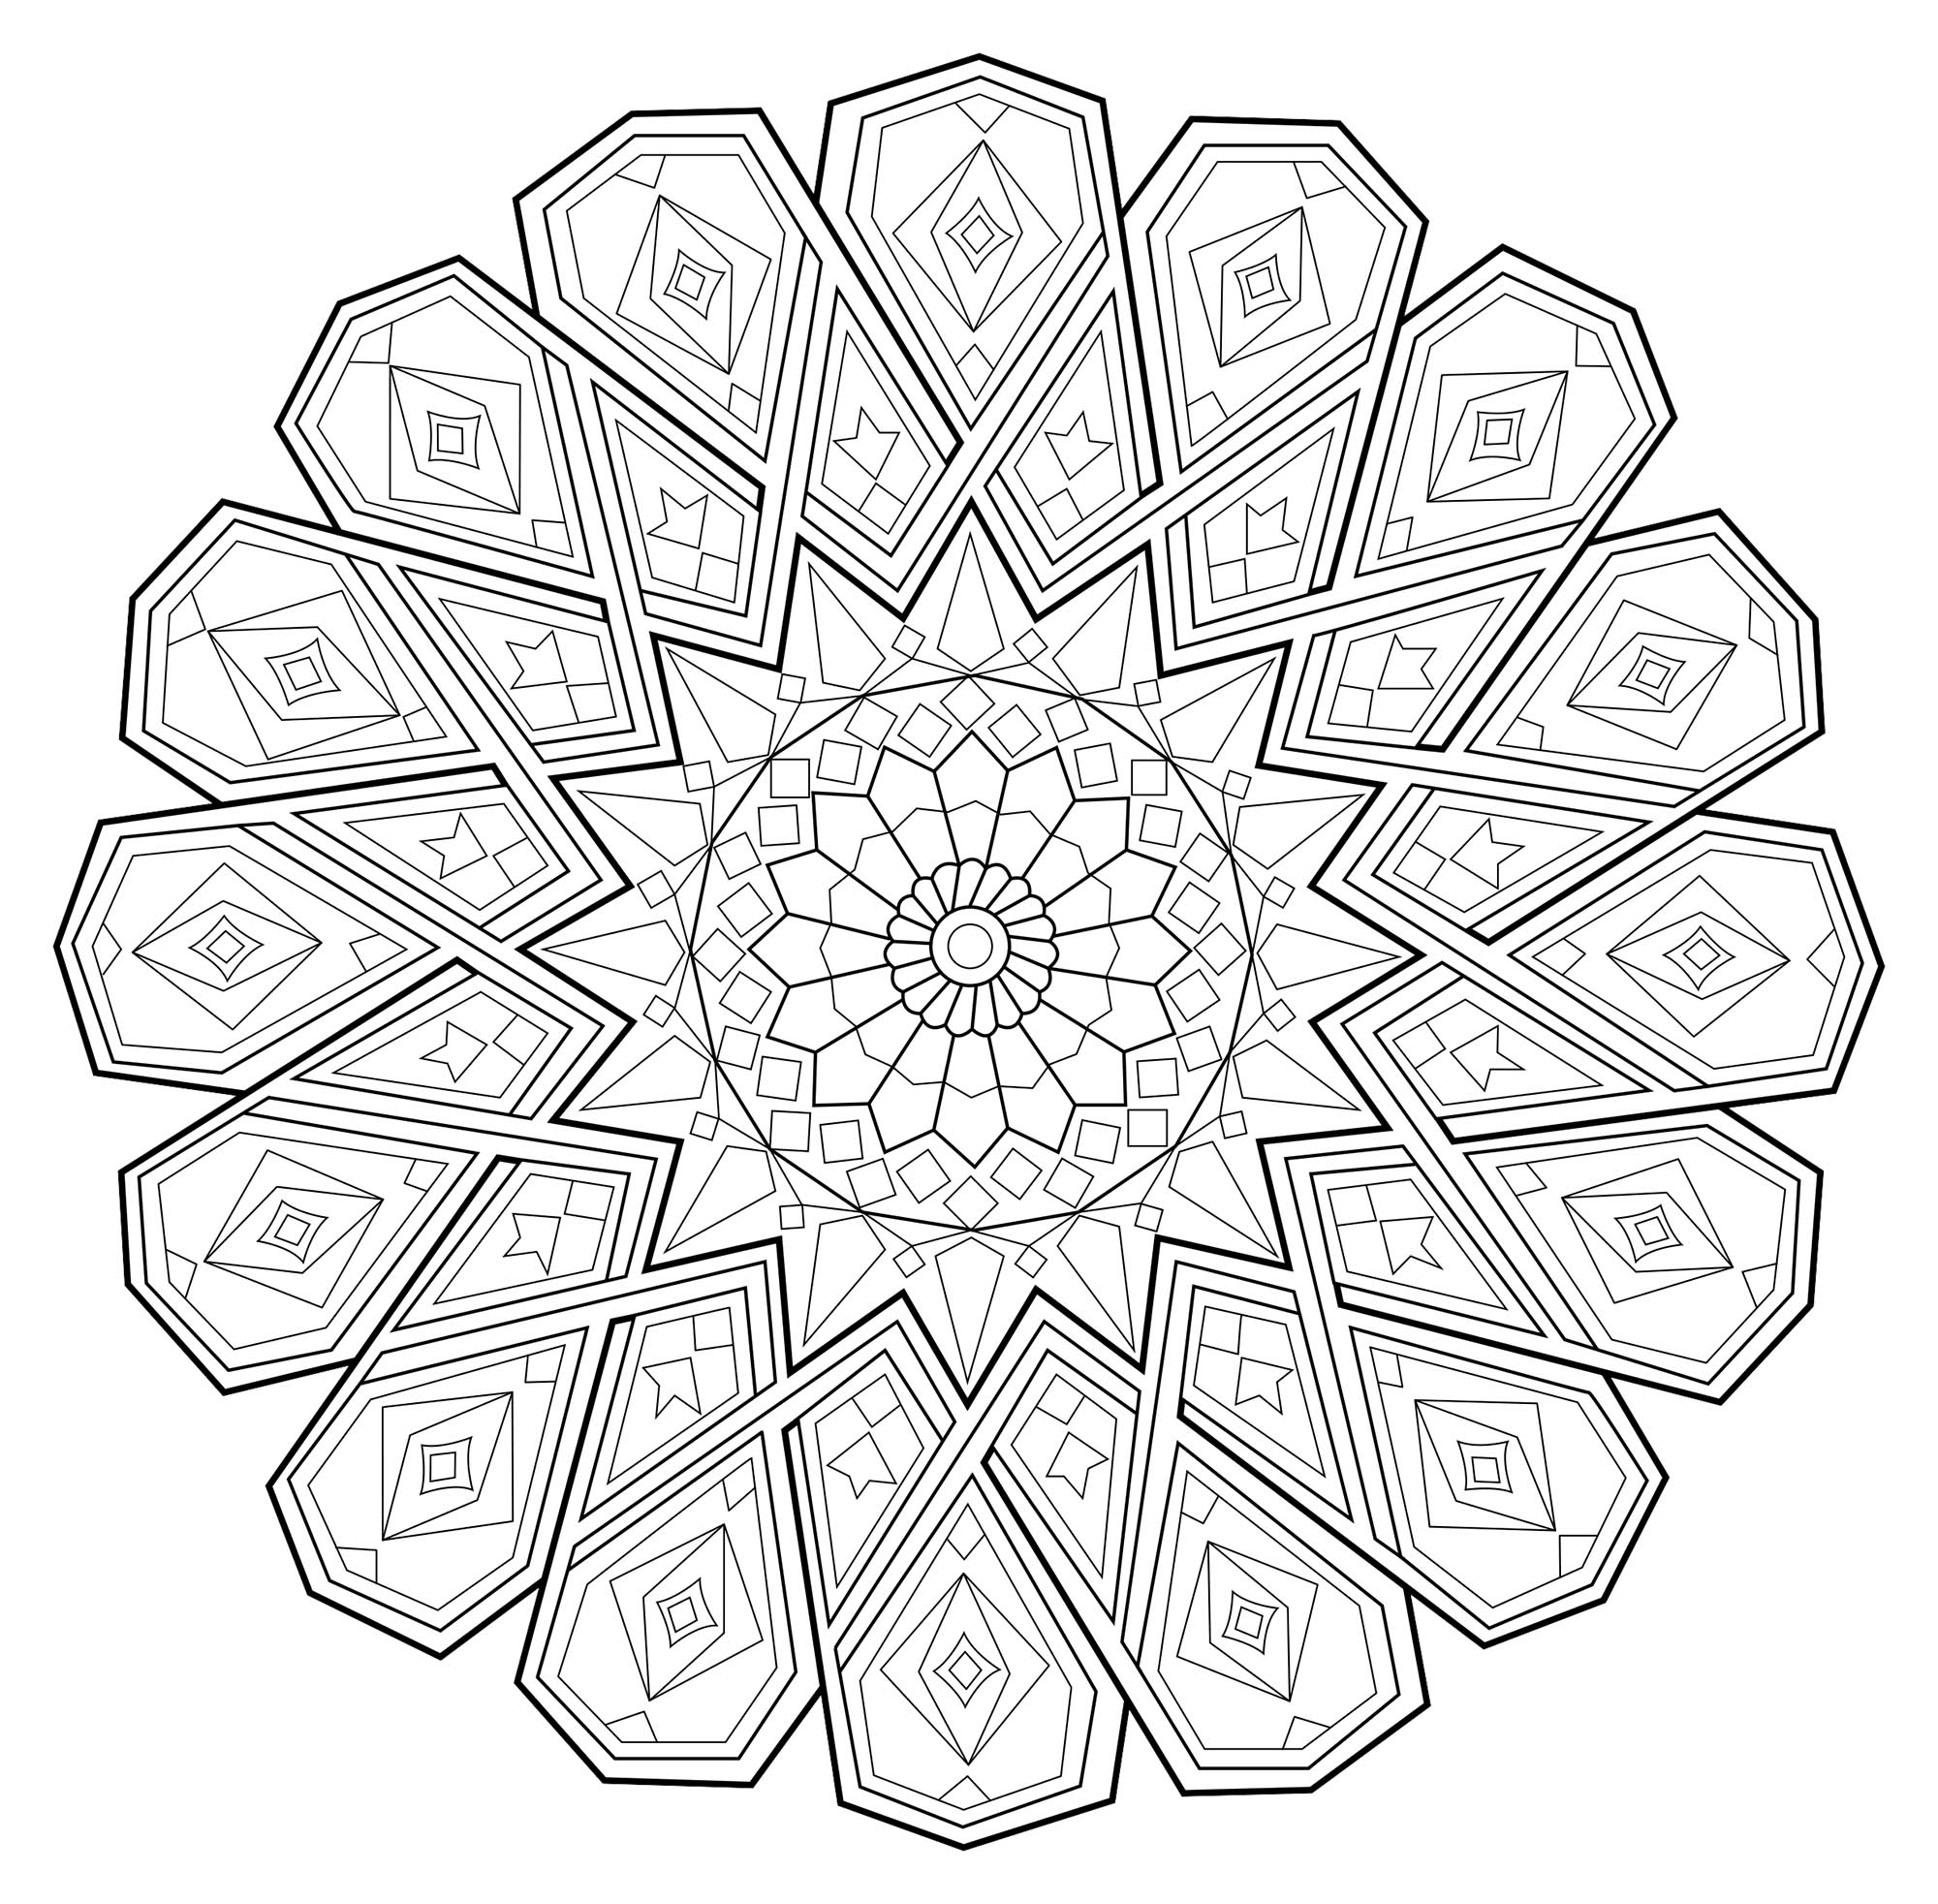 Unique Dessin A Colorier De Mandala Difficile